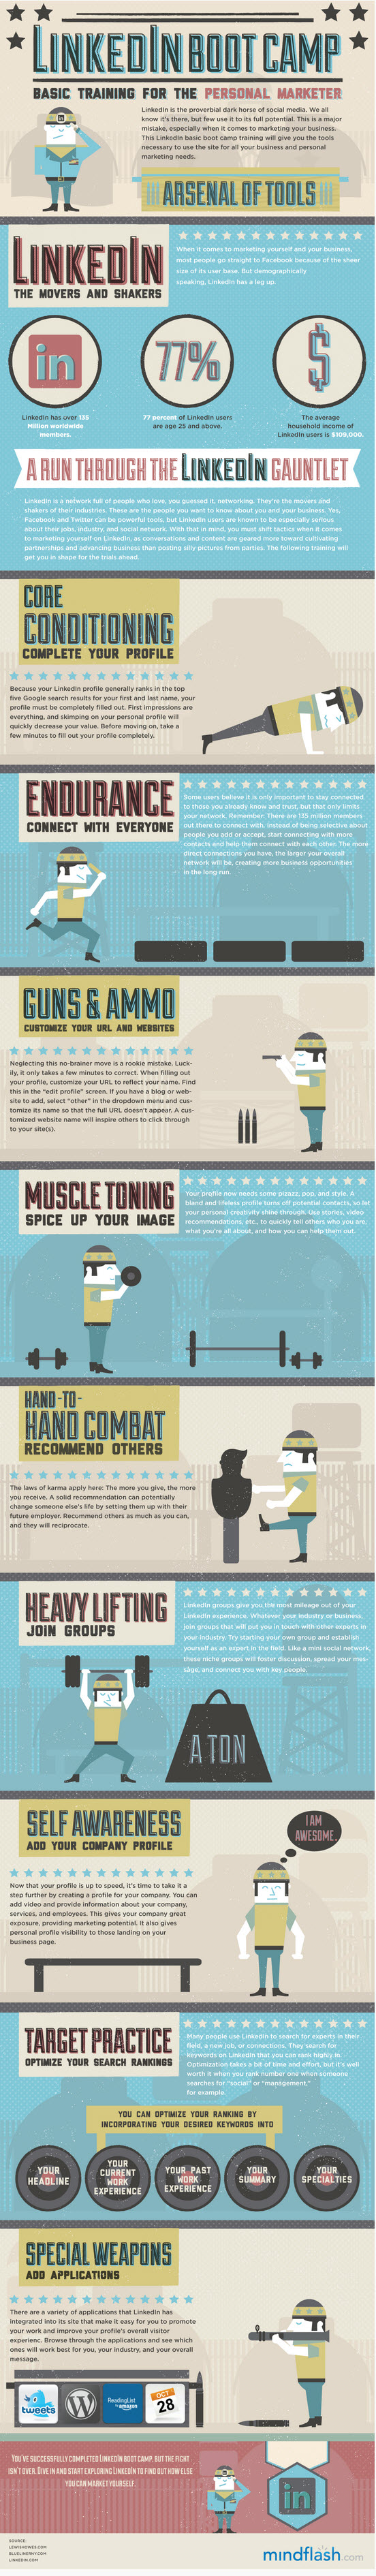 Linkedin-Boot-Camp-Basic-Training-infographic